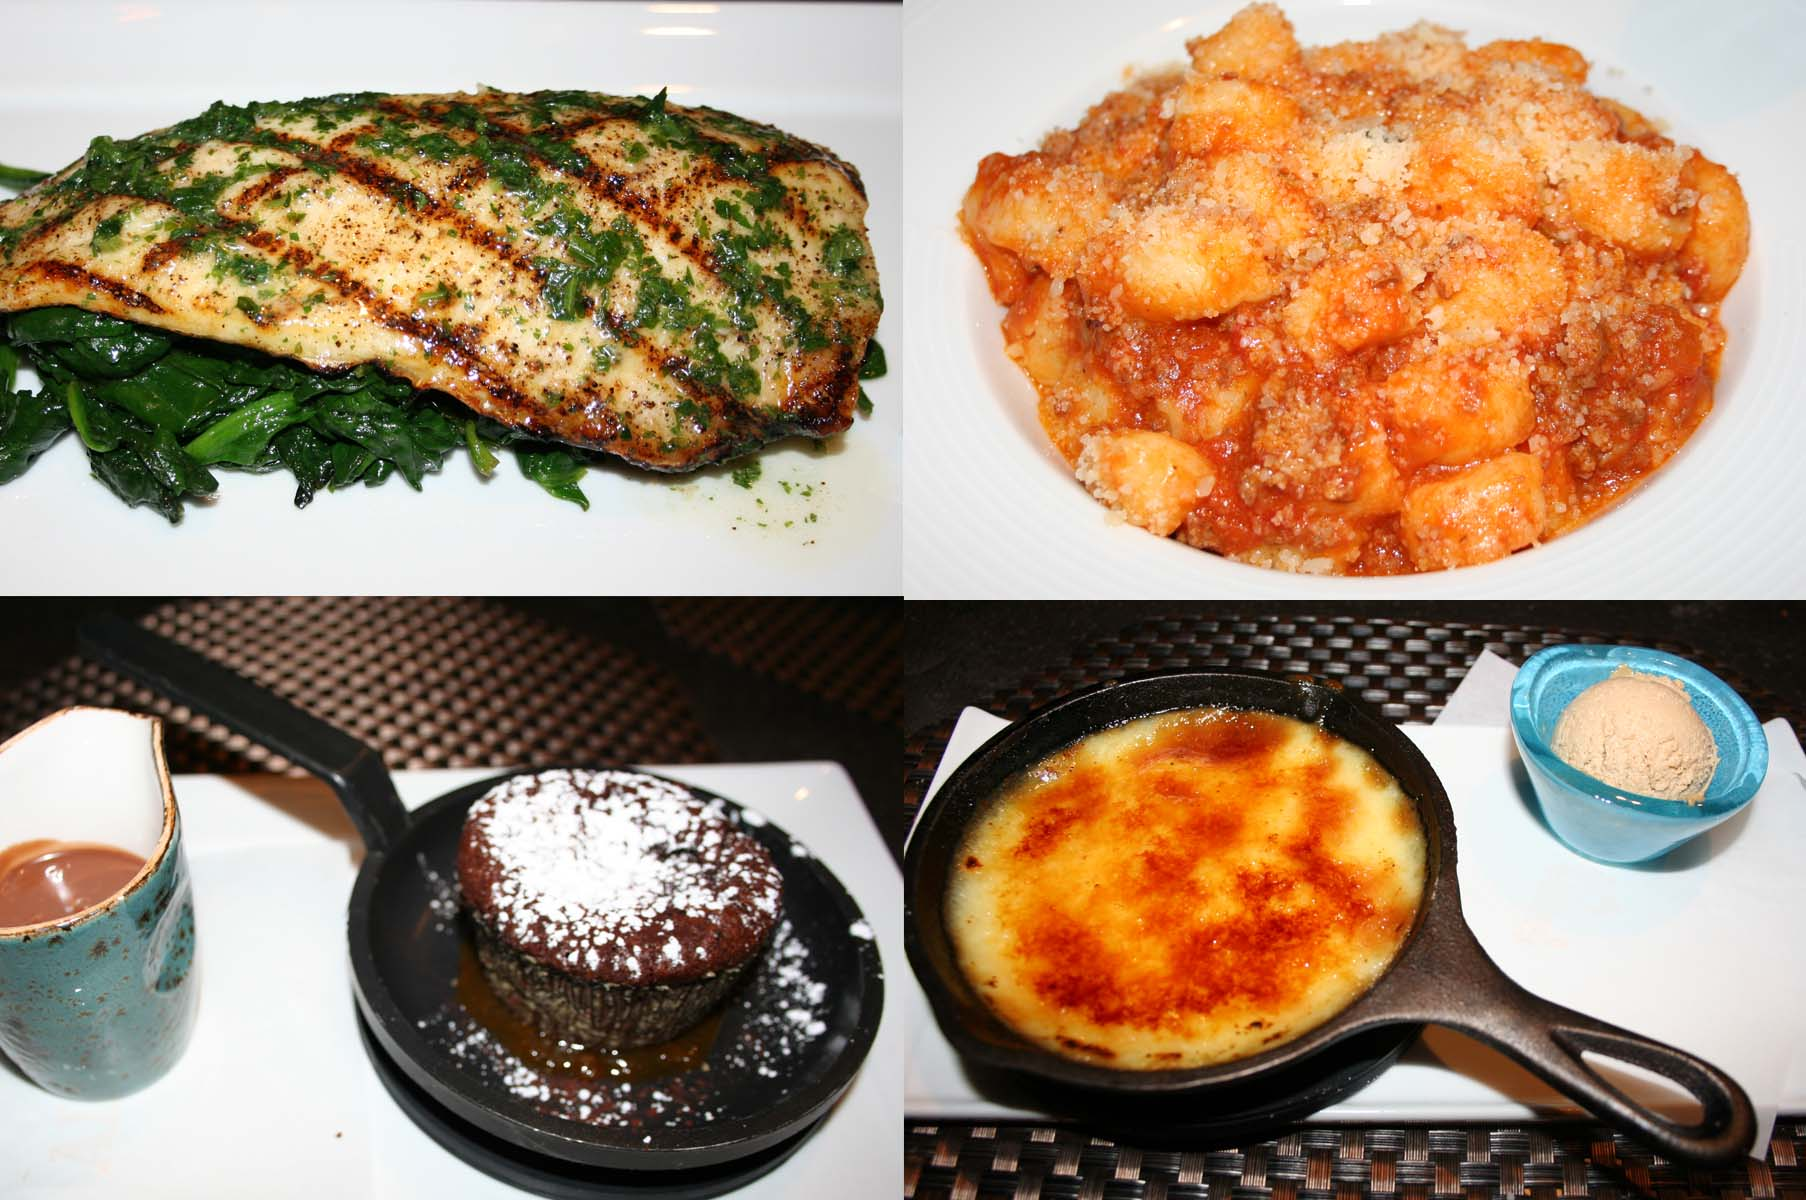 Entrees include grilled rainbow trout (clockwise from upper left) and gnocchi with sausage ragu, while desserts include polenta bianco and torta gianduja. (Photos: Mark Heckathorn/DC on Heels)